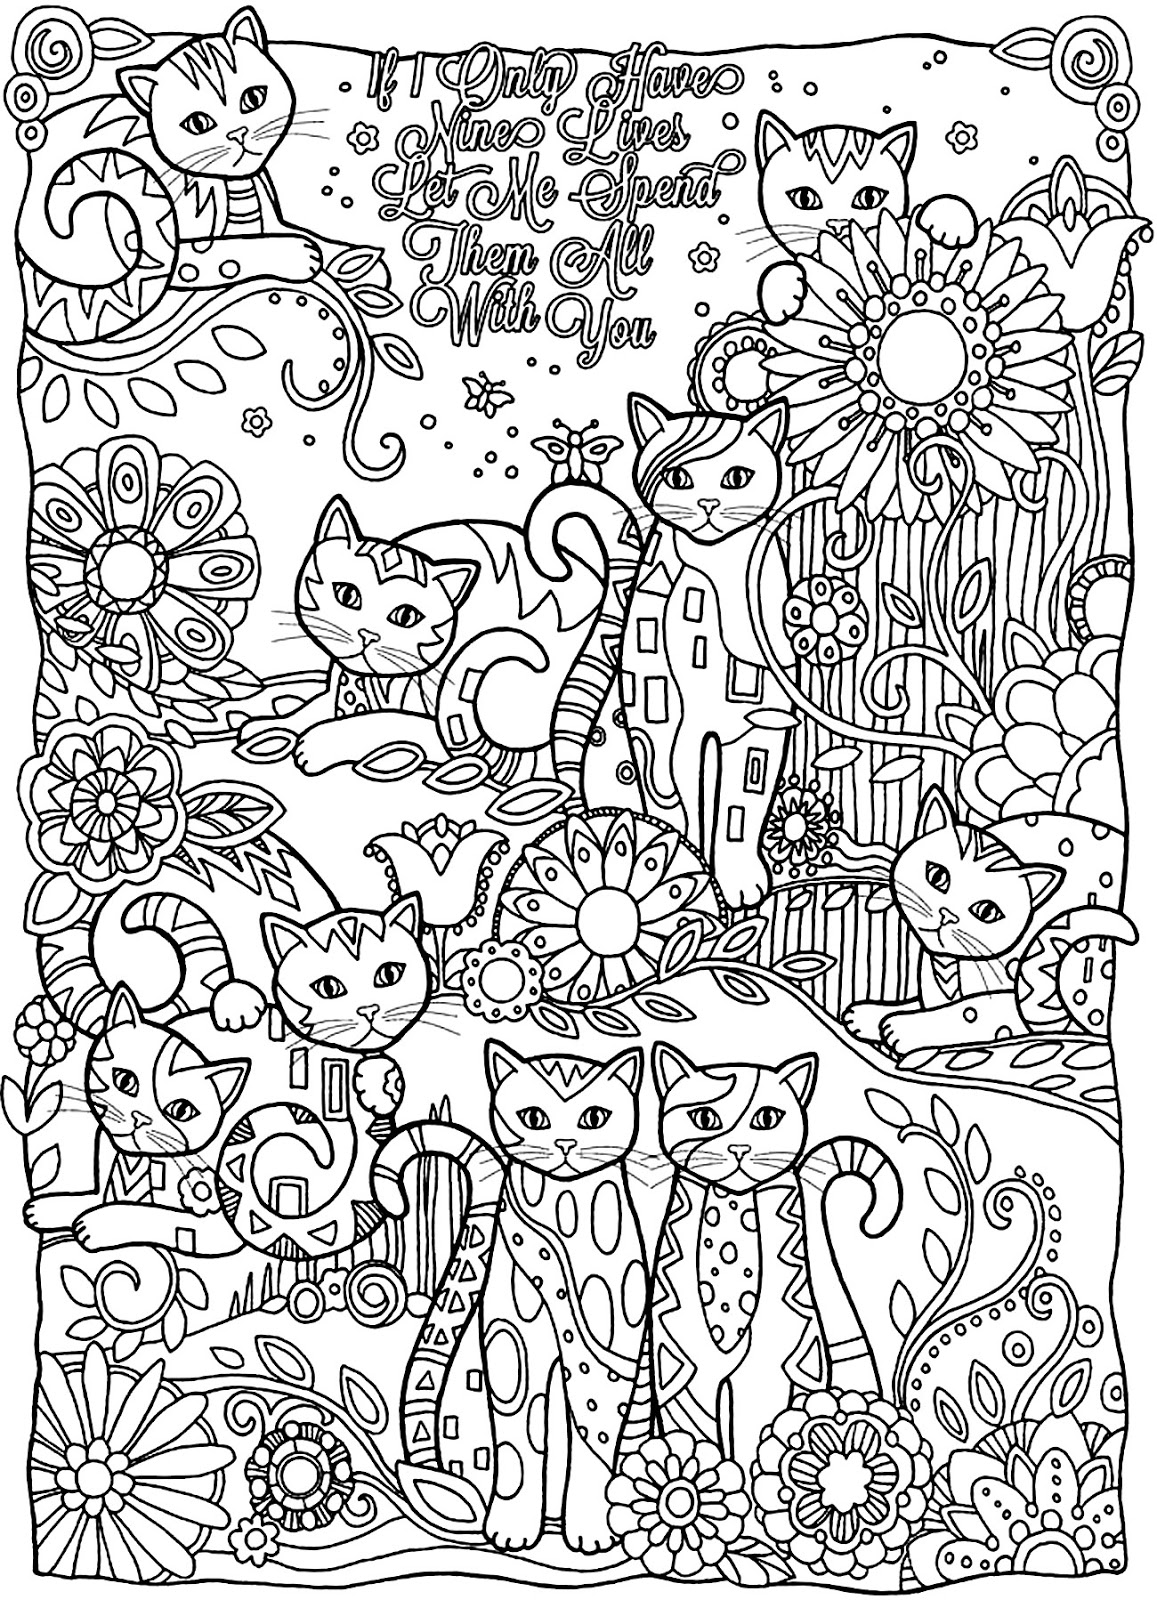 Coloring Pages Adults Animals Insects Nggallery Page 2 Imageinsectes Adult Cats Cutes 1